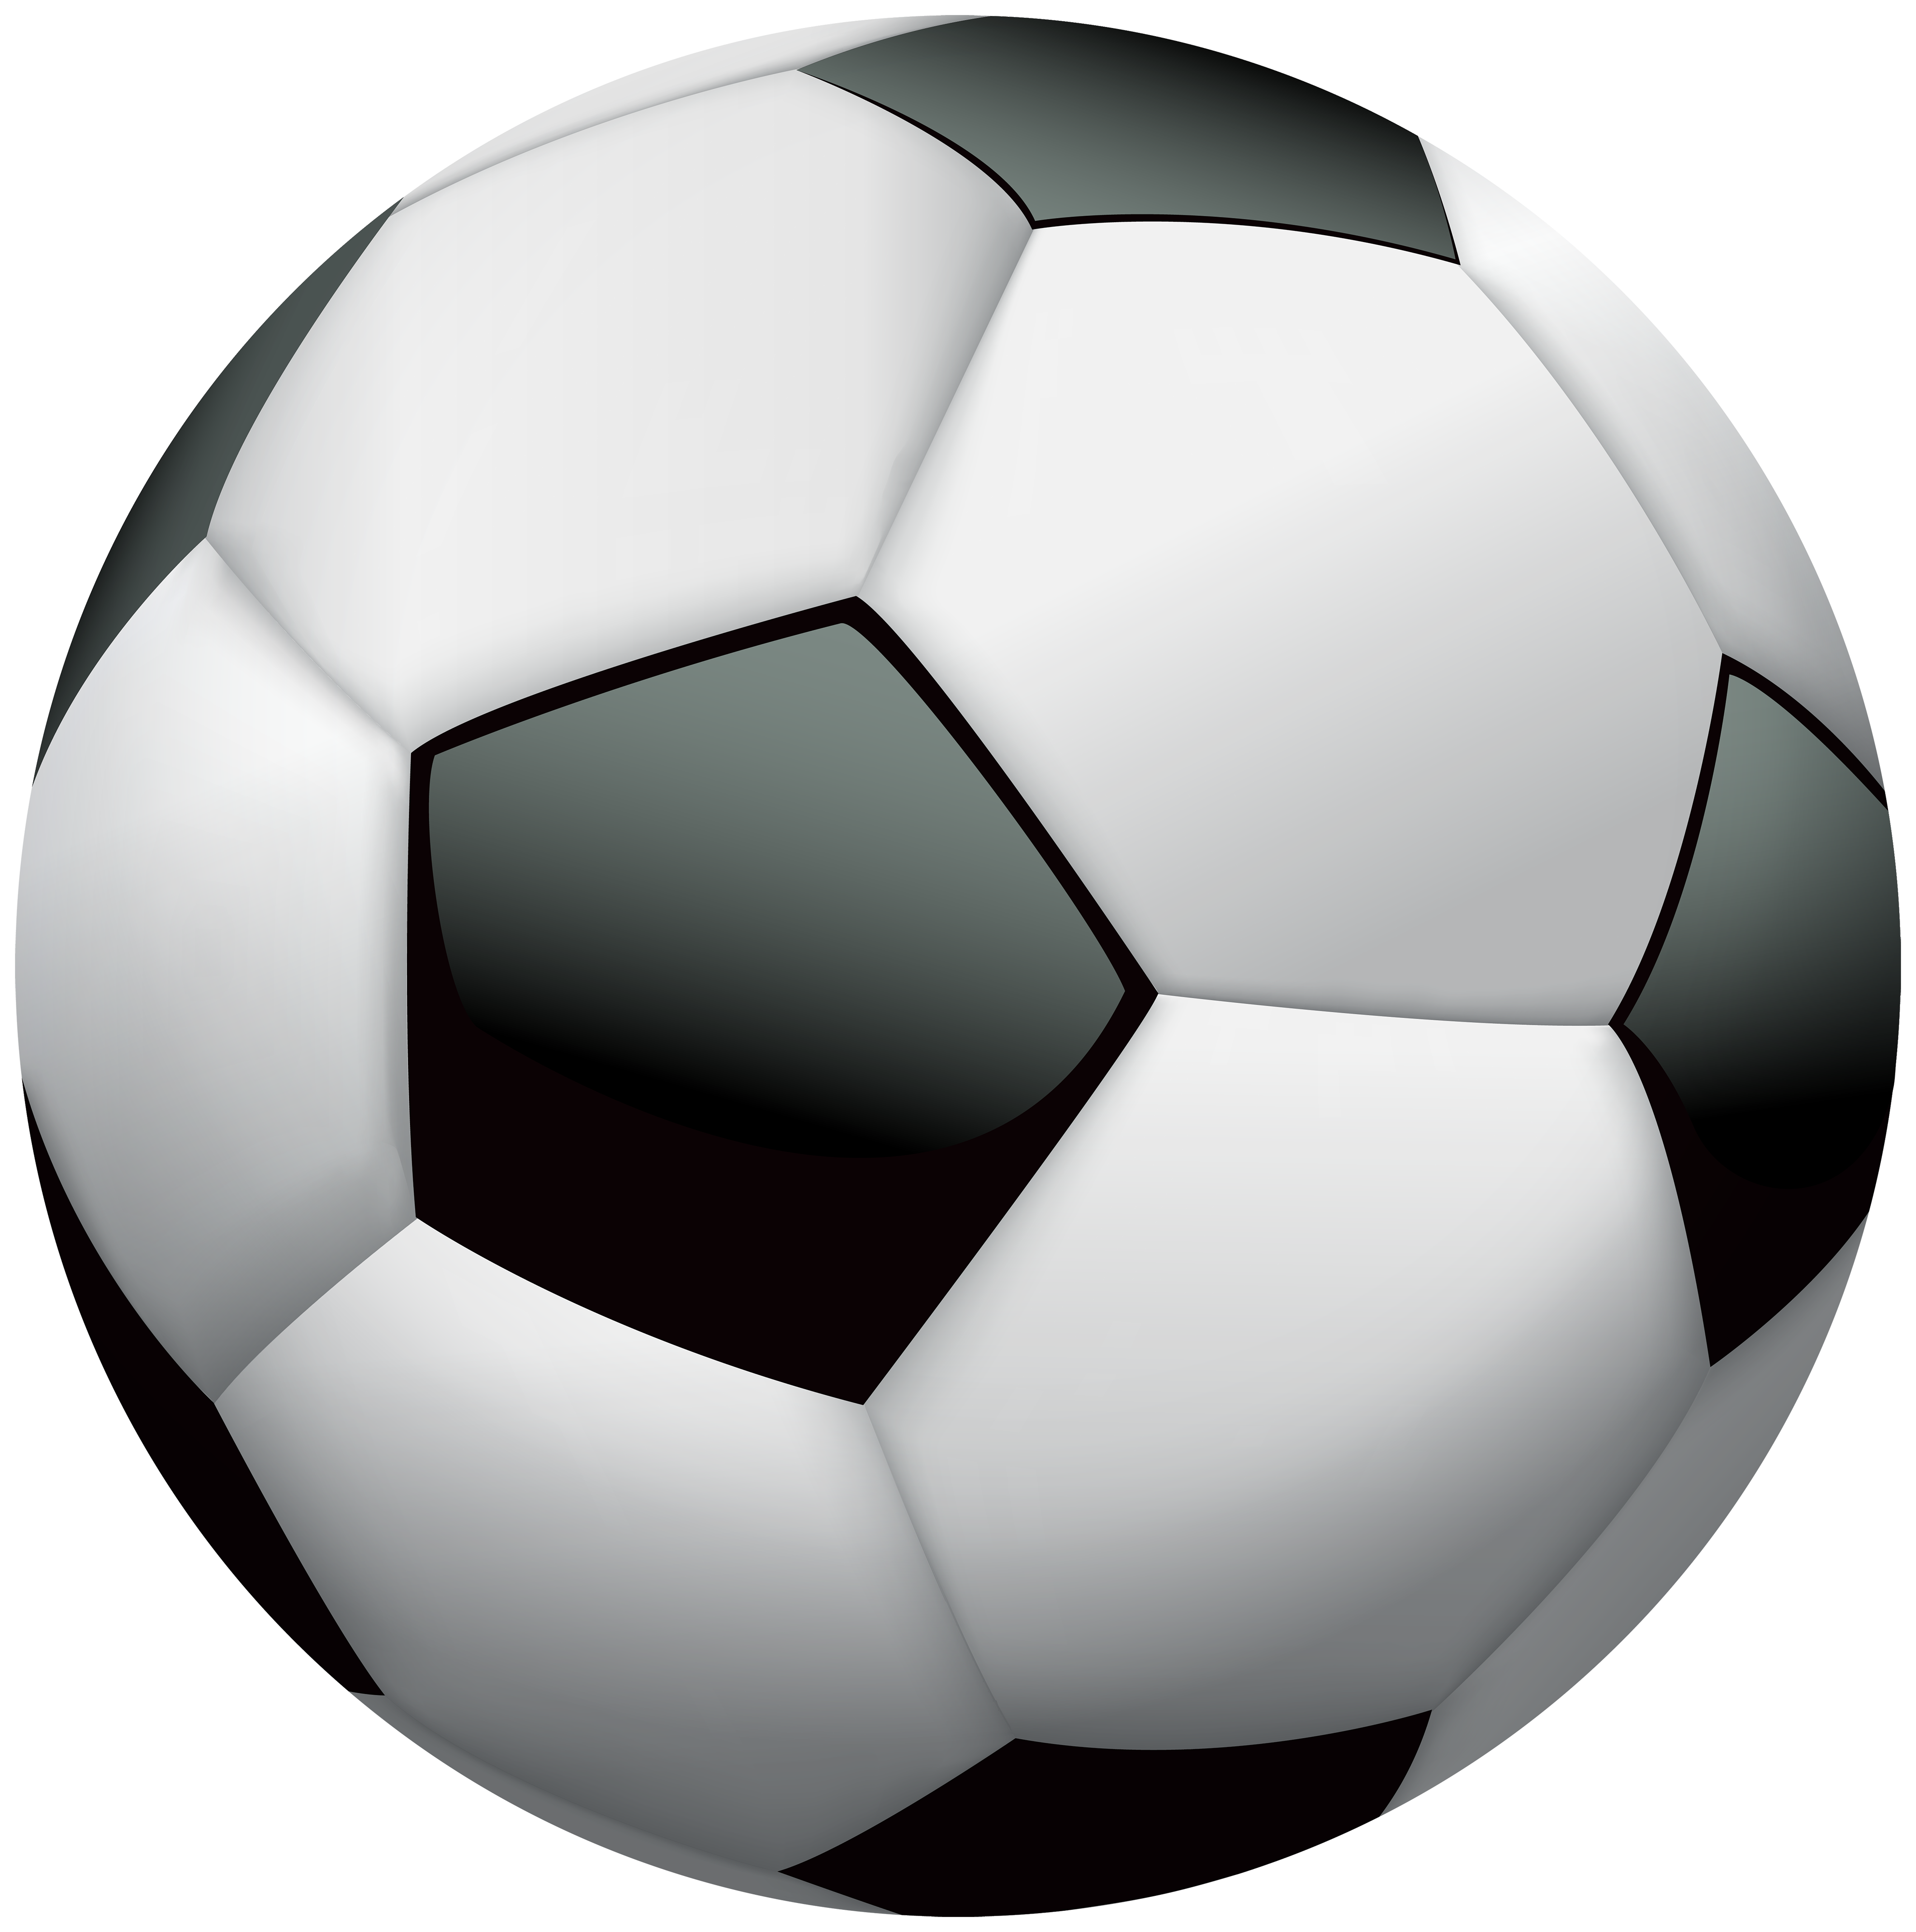 Box clipart soccer ball. Png best web